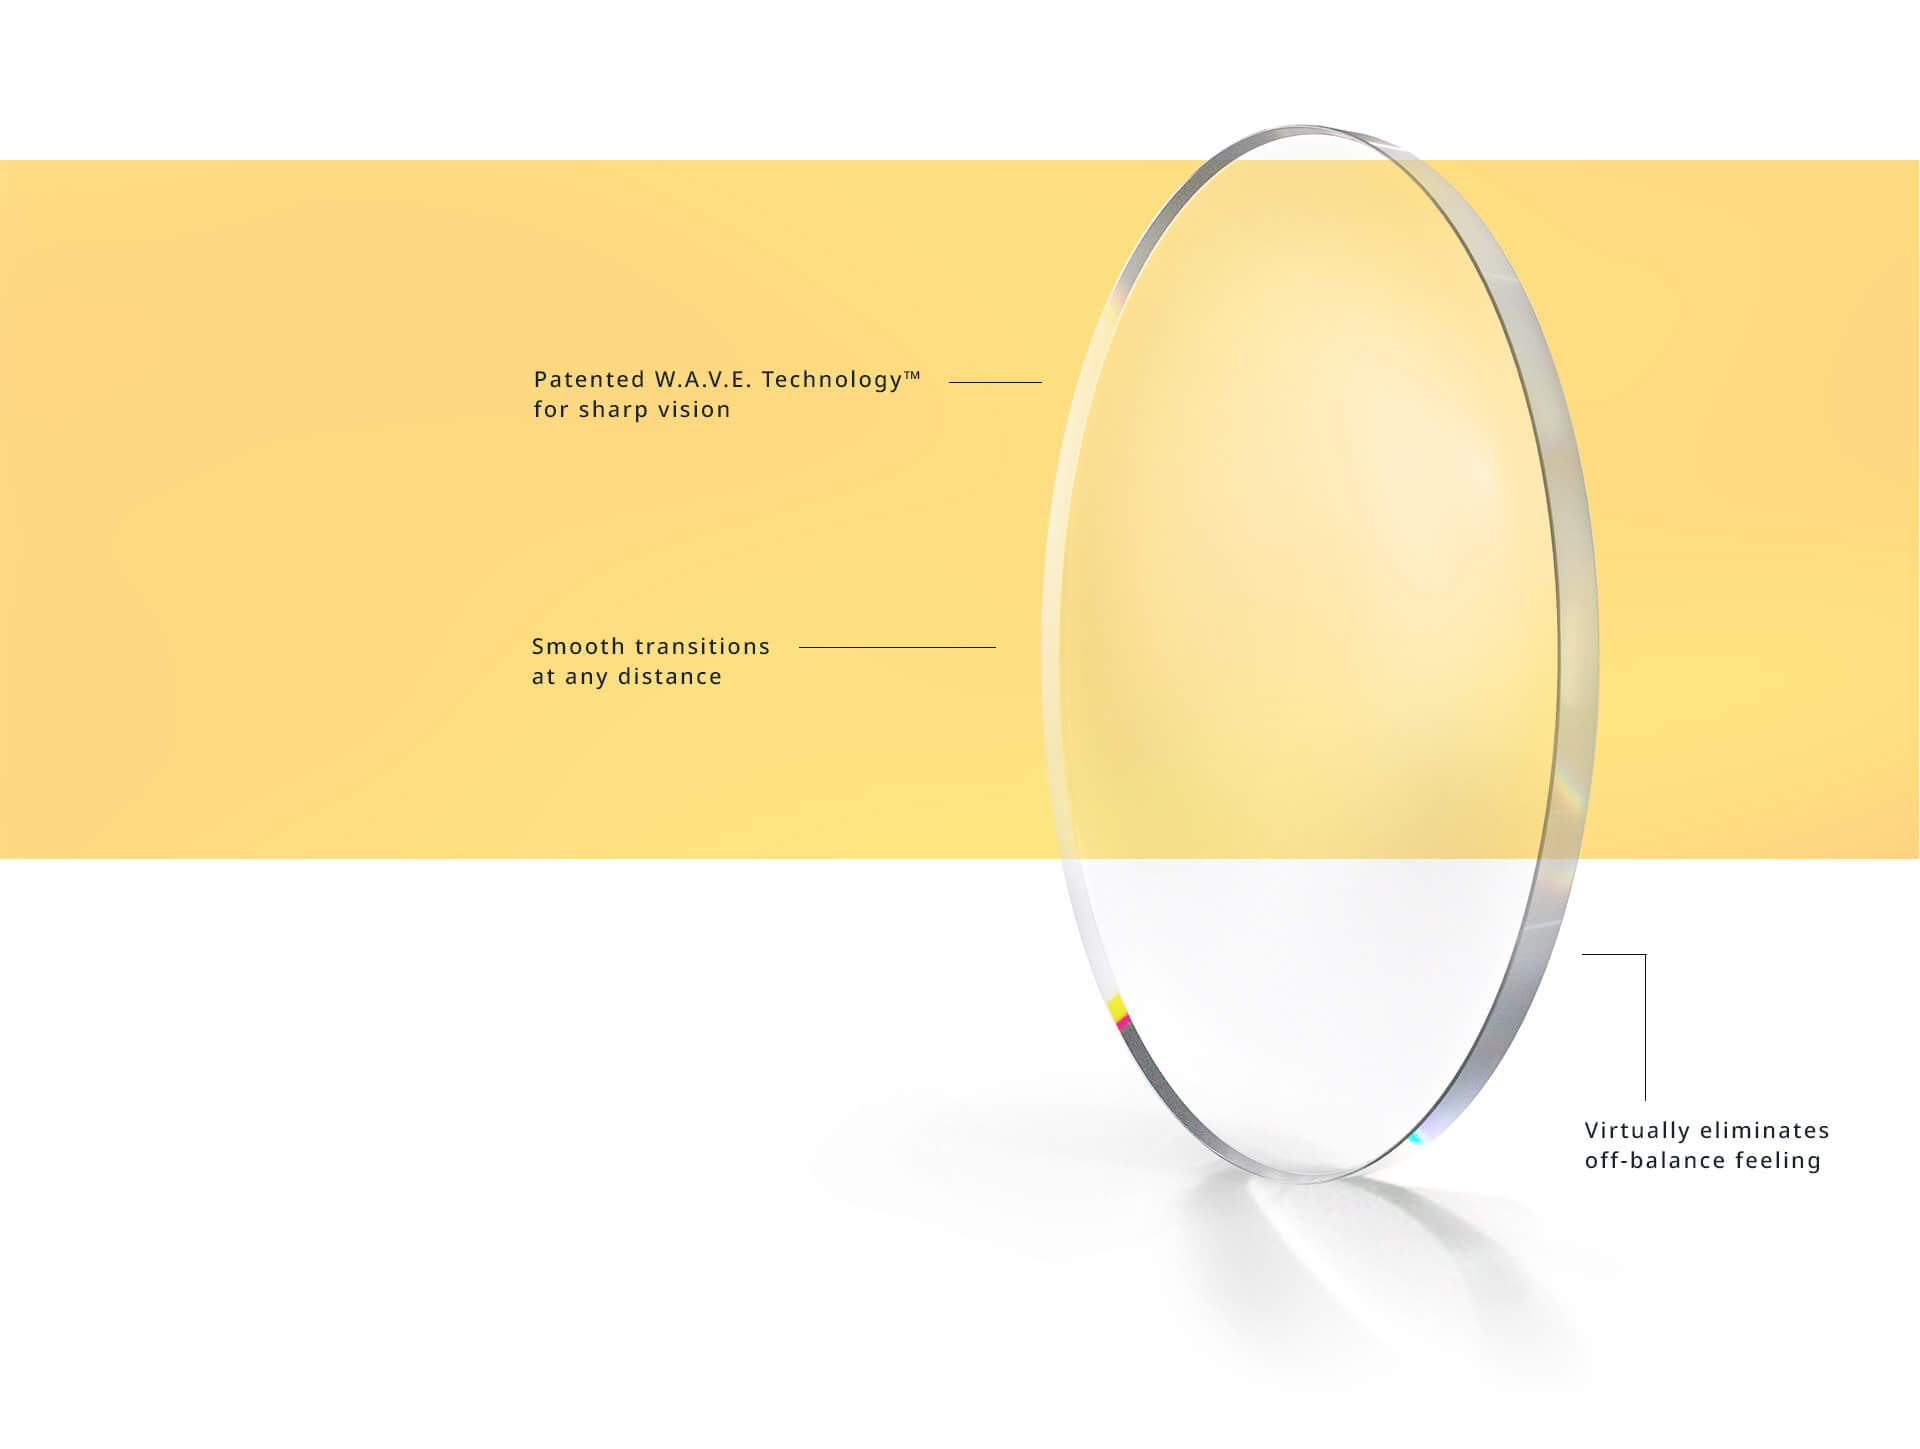 Varilux lenses use patented W.A.V.E technology to provide sharp vision and smooth transitions at any distance. Varilux lense virtually eliminates that off-balance feeling.